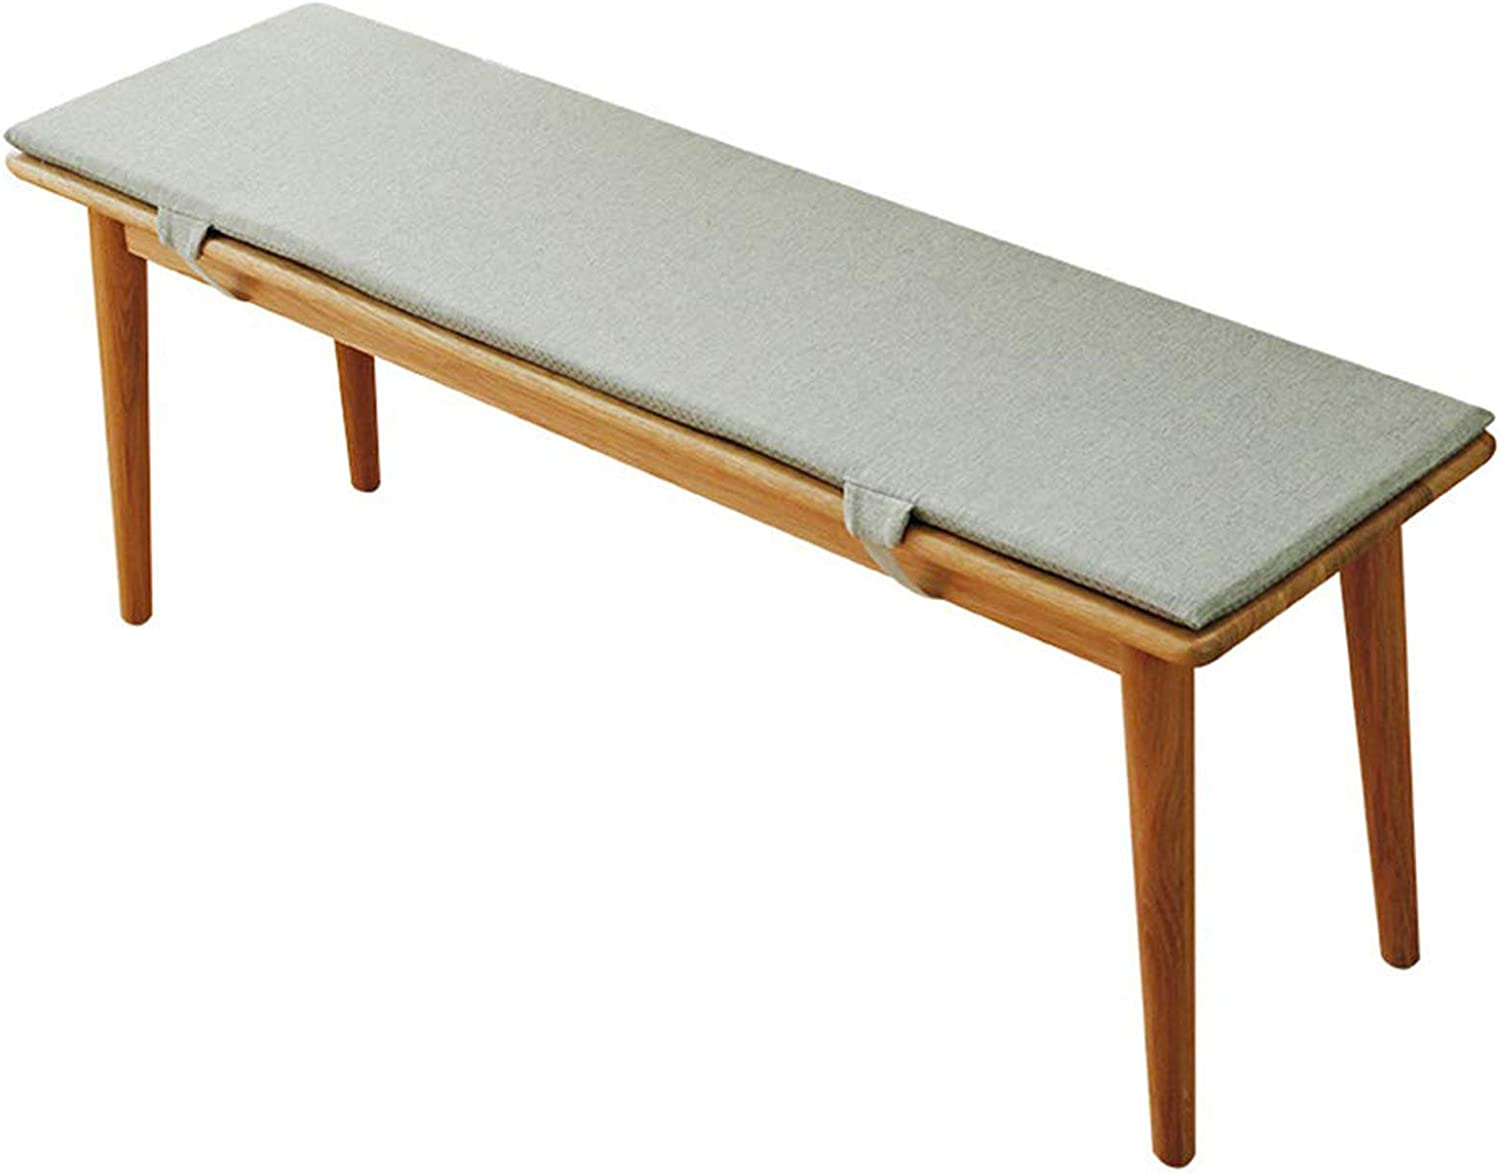 Homranger Patio Bench Cushion Solid Wood Bench Indoor Outdoor Bench Anti Slip Seat Pad With Ties For Swing Bench Glider A 100x35x2cm 39x13x1inch Amazon Co Uk Kitchen Home